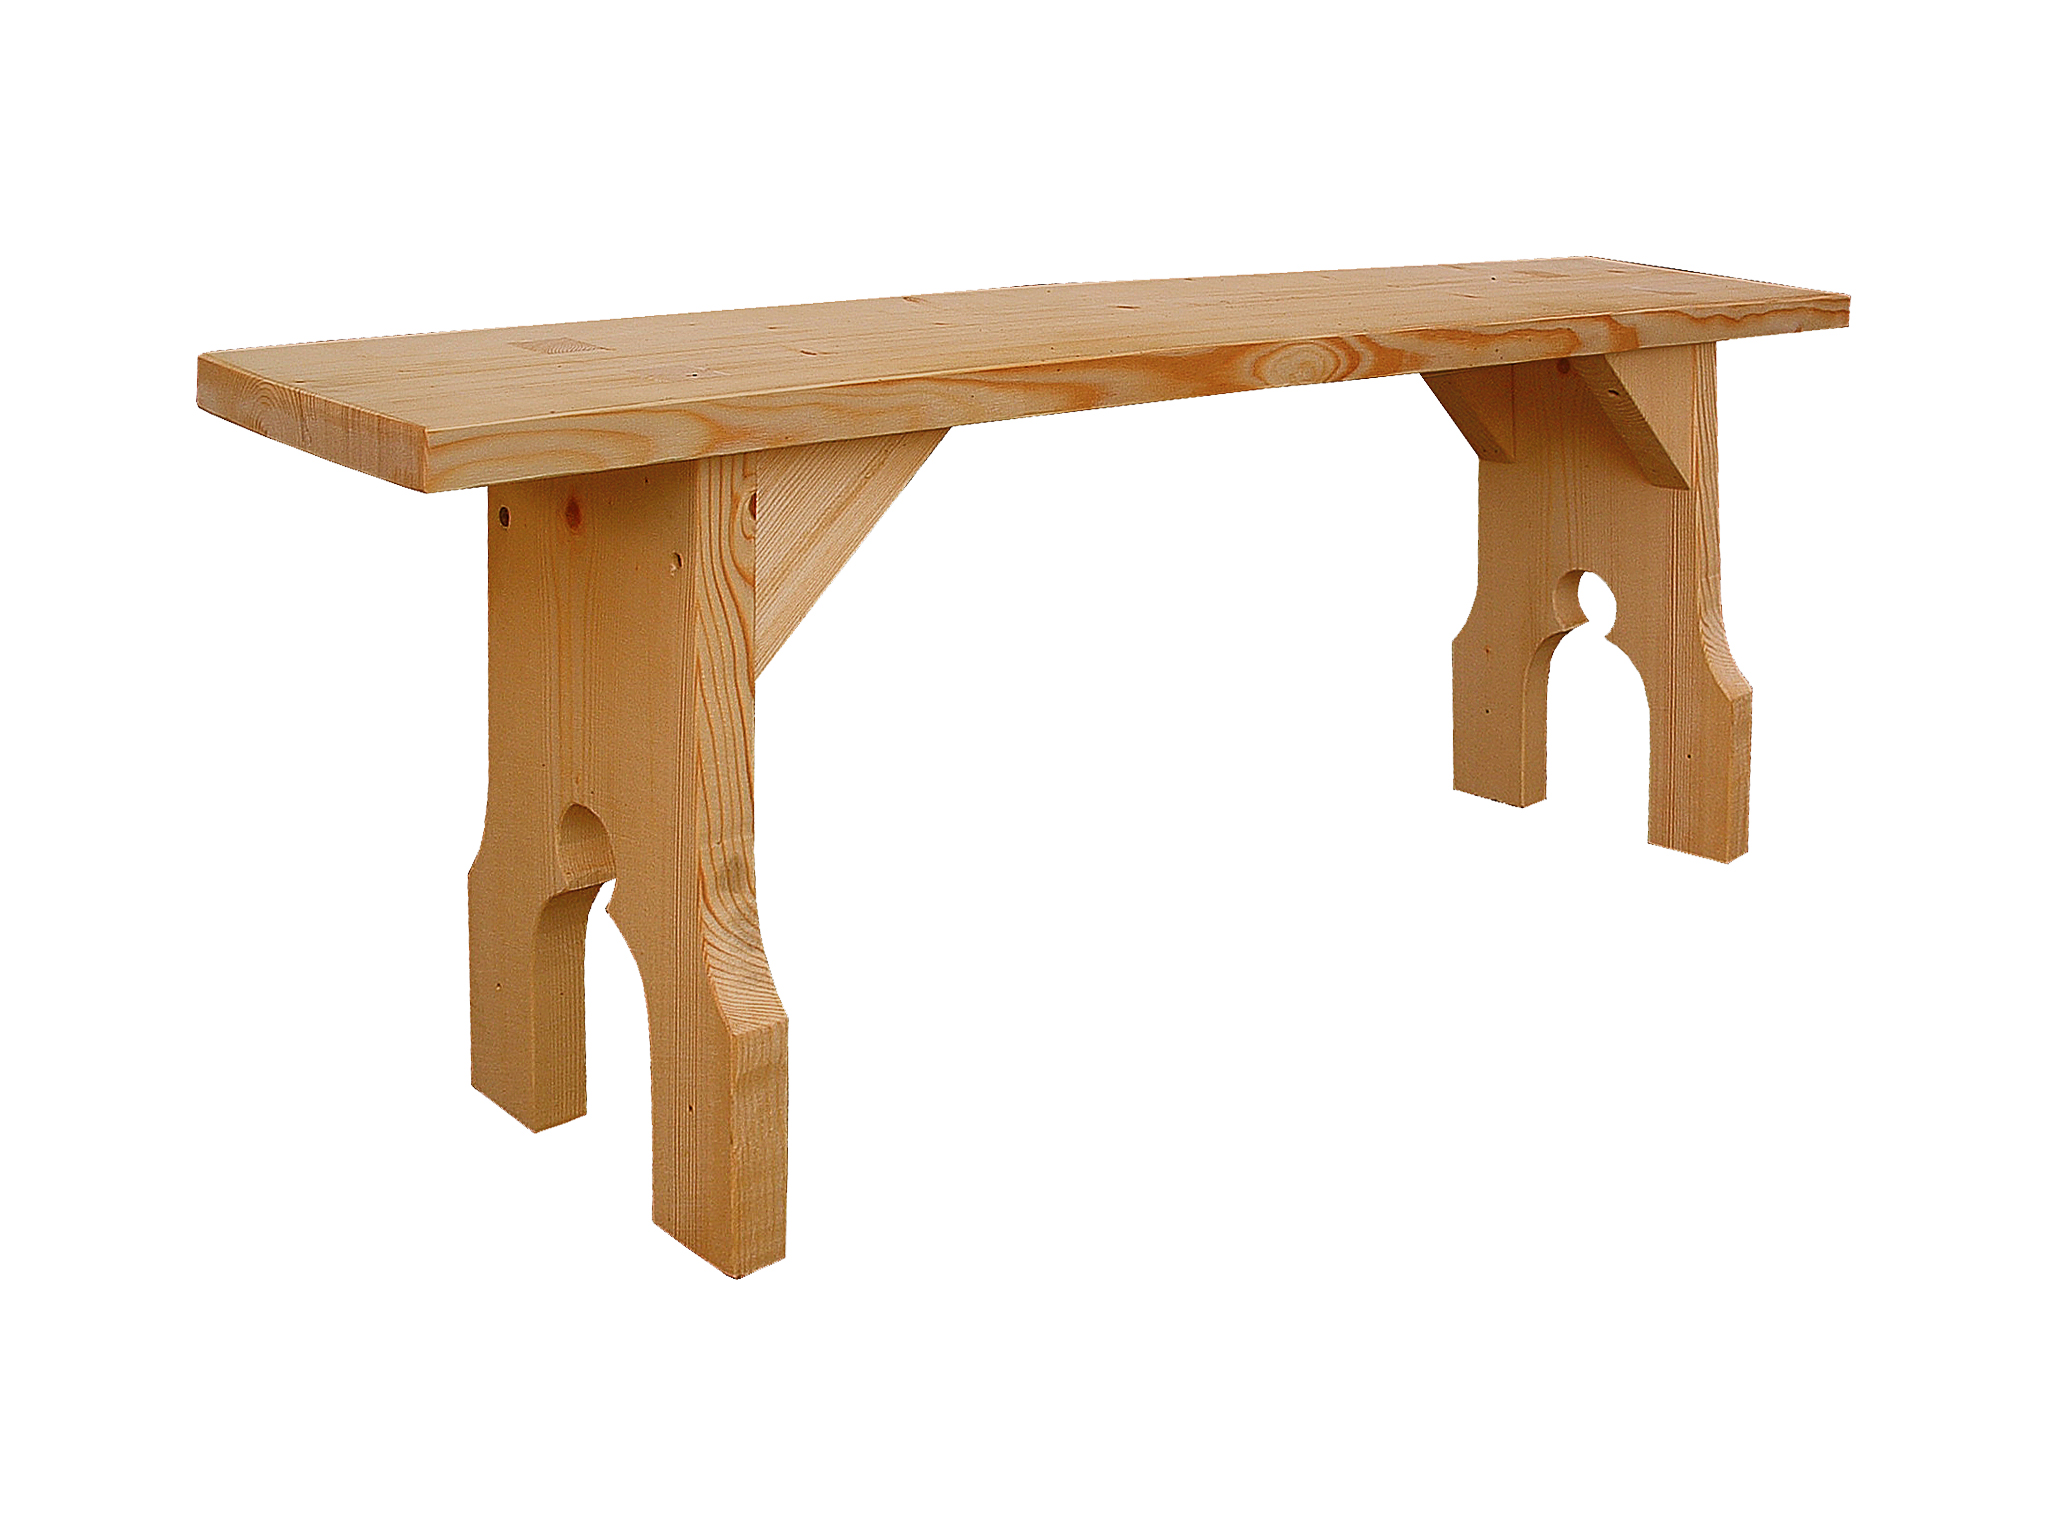 Medieval-style pine bench